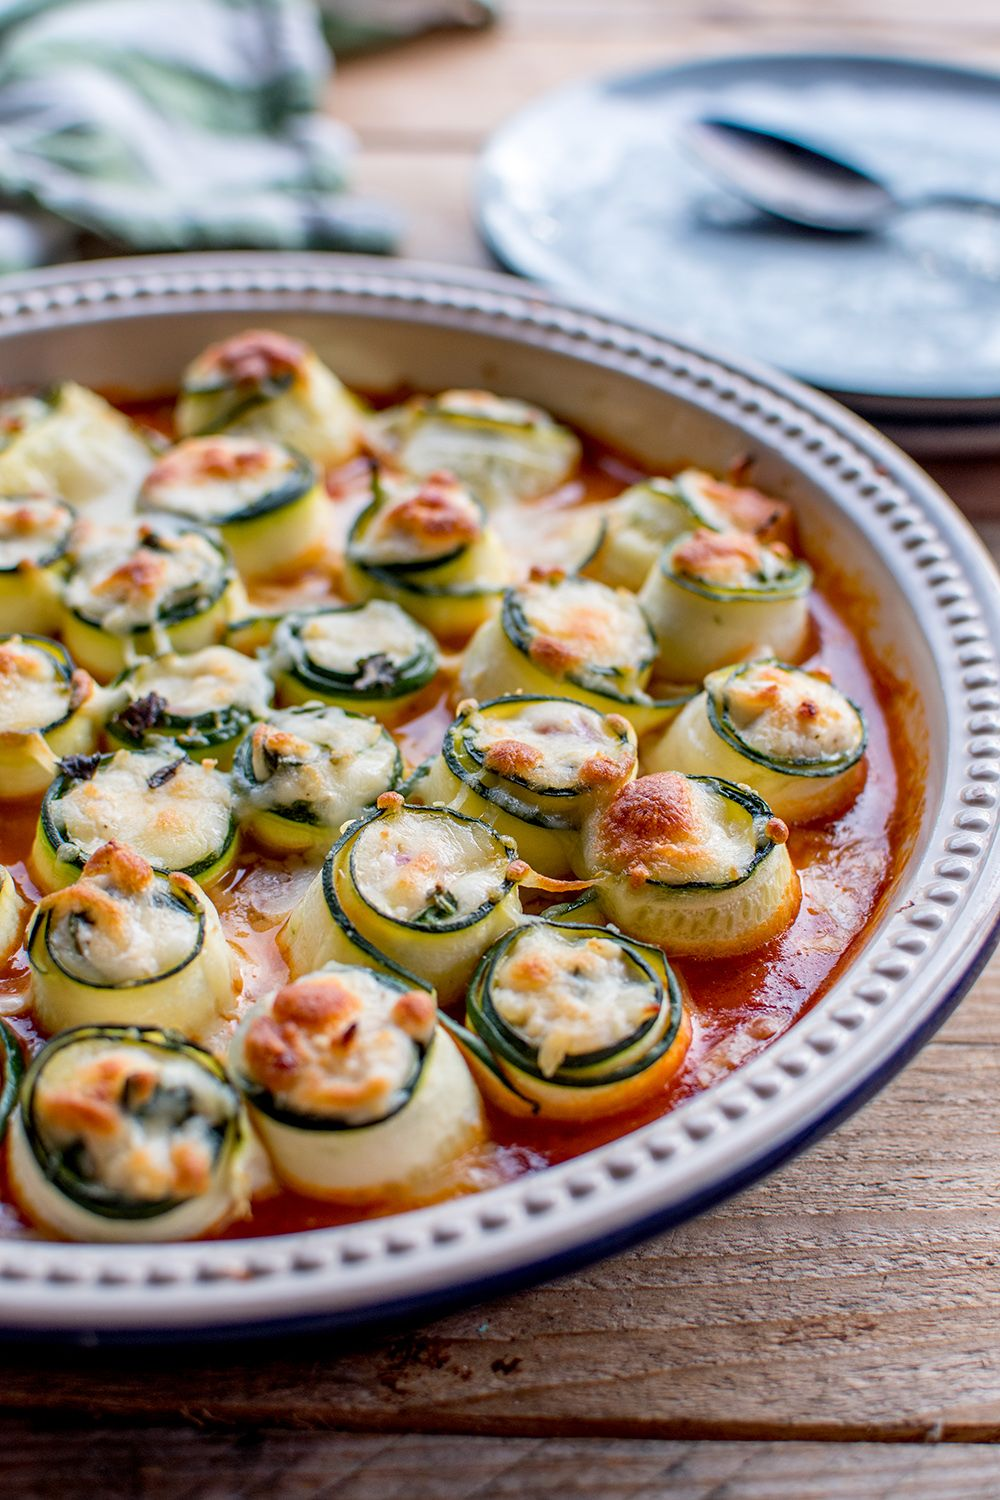 Zucchini-Cannelloni mit Ricotta-Spinat-Füllung: Sommersoulfood ahoi #spinatlasagne